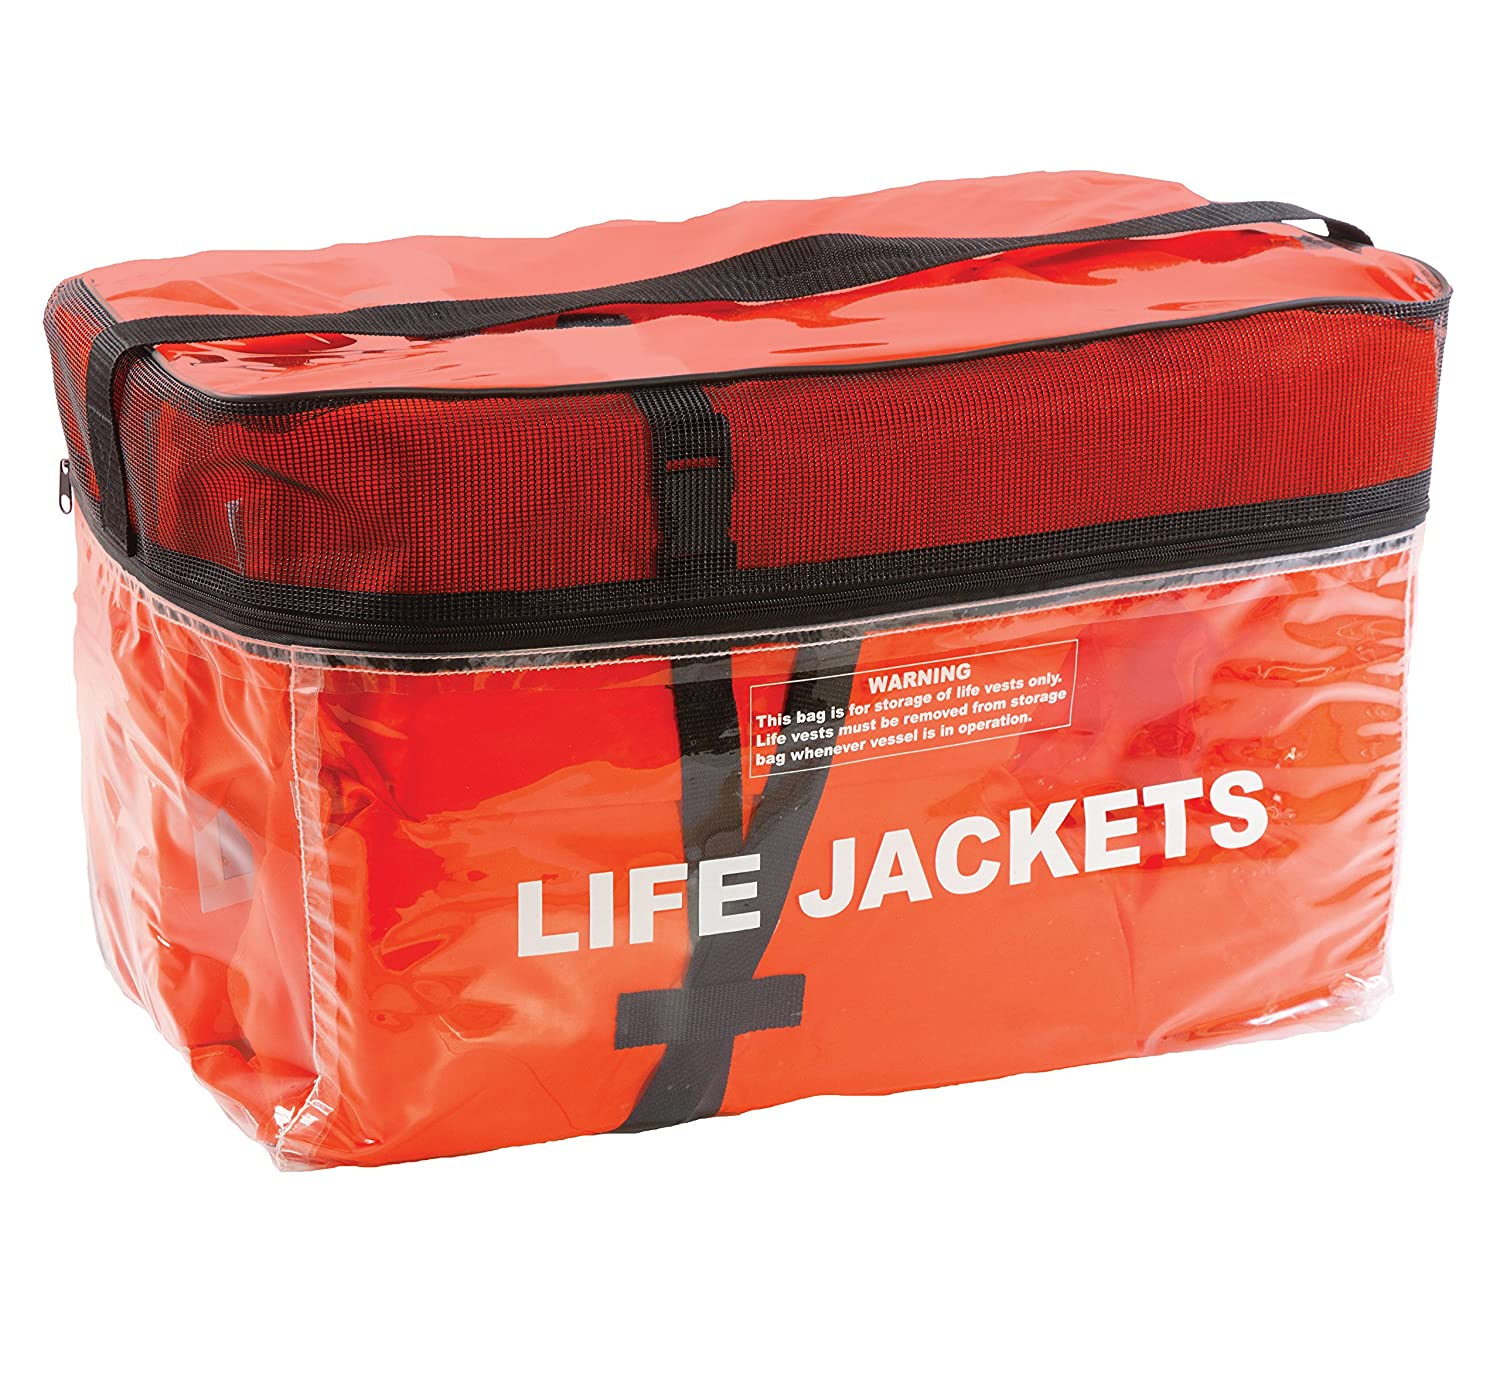 Type II Keyhole Life Jackets with Storage Bag by Airhead, Adult - by Airhead   B00BR2RMJC